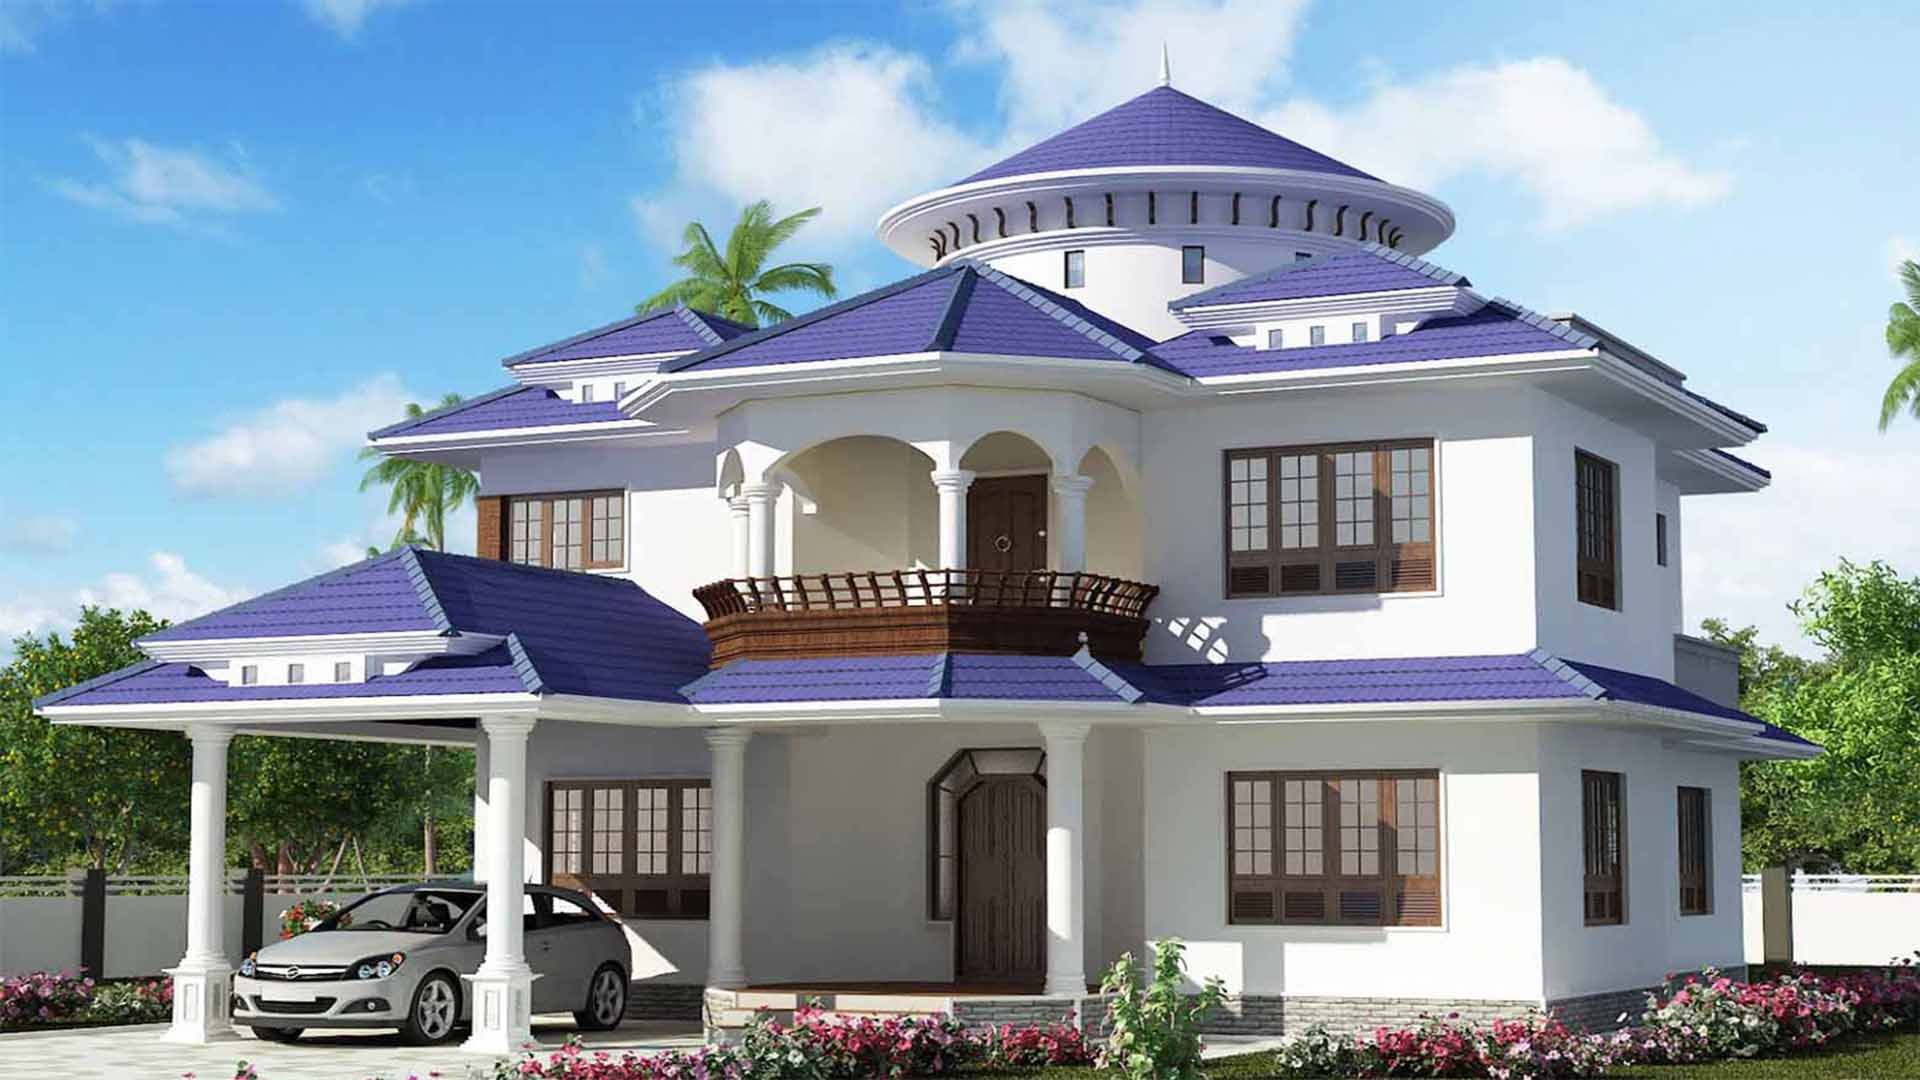 Home Design Images Hd House Design Pictures Kerala House Design Design Your Dream House Dream house images hd wallpaper